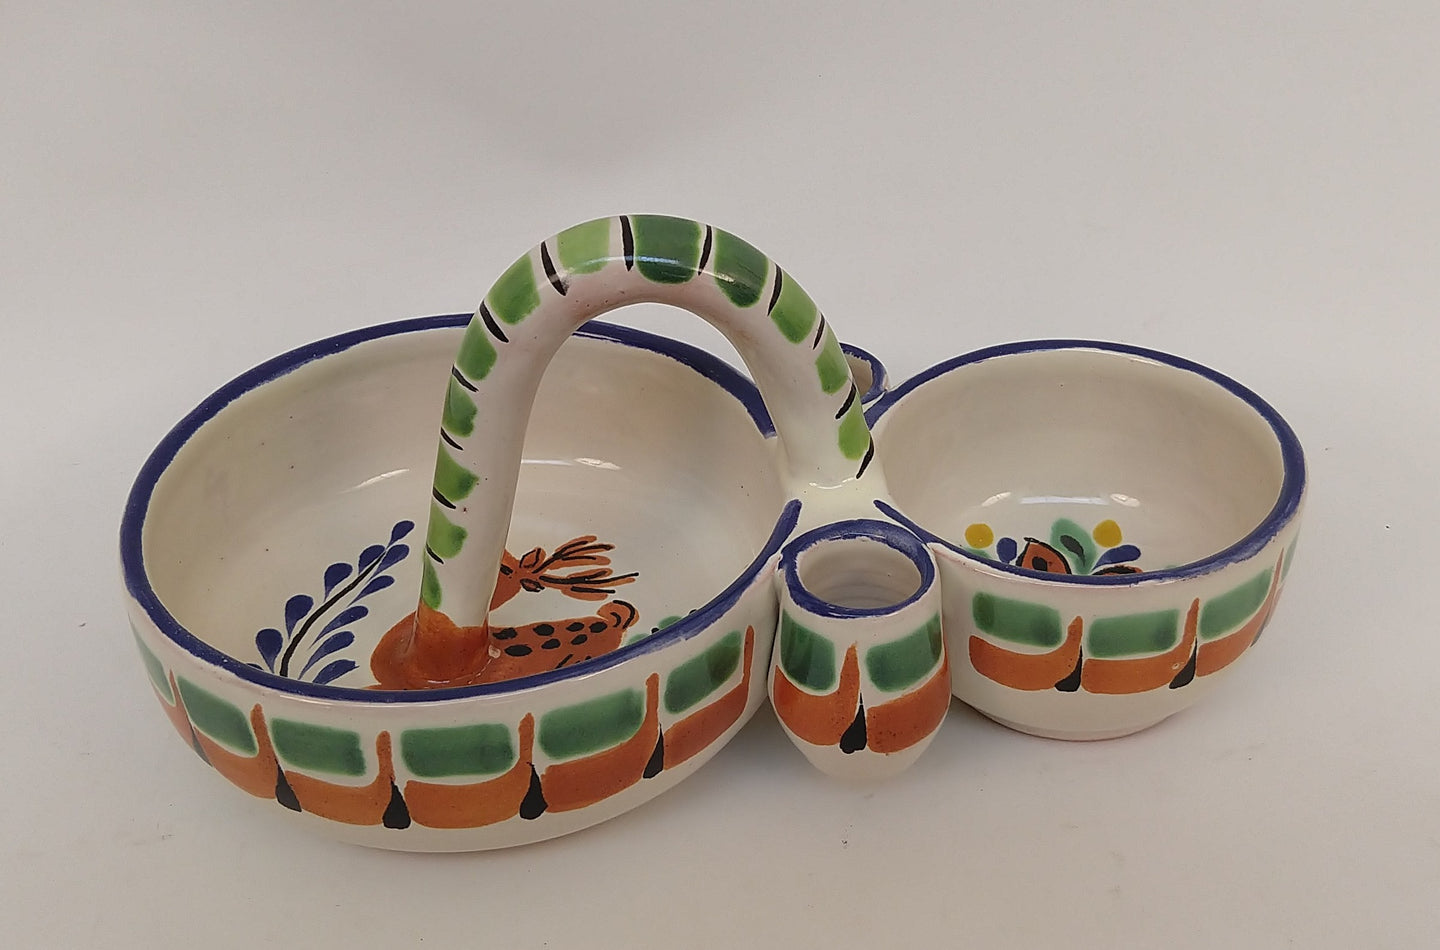 Olive Snack Dish Green-Terracota Colors